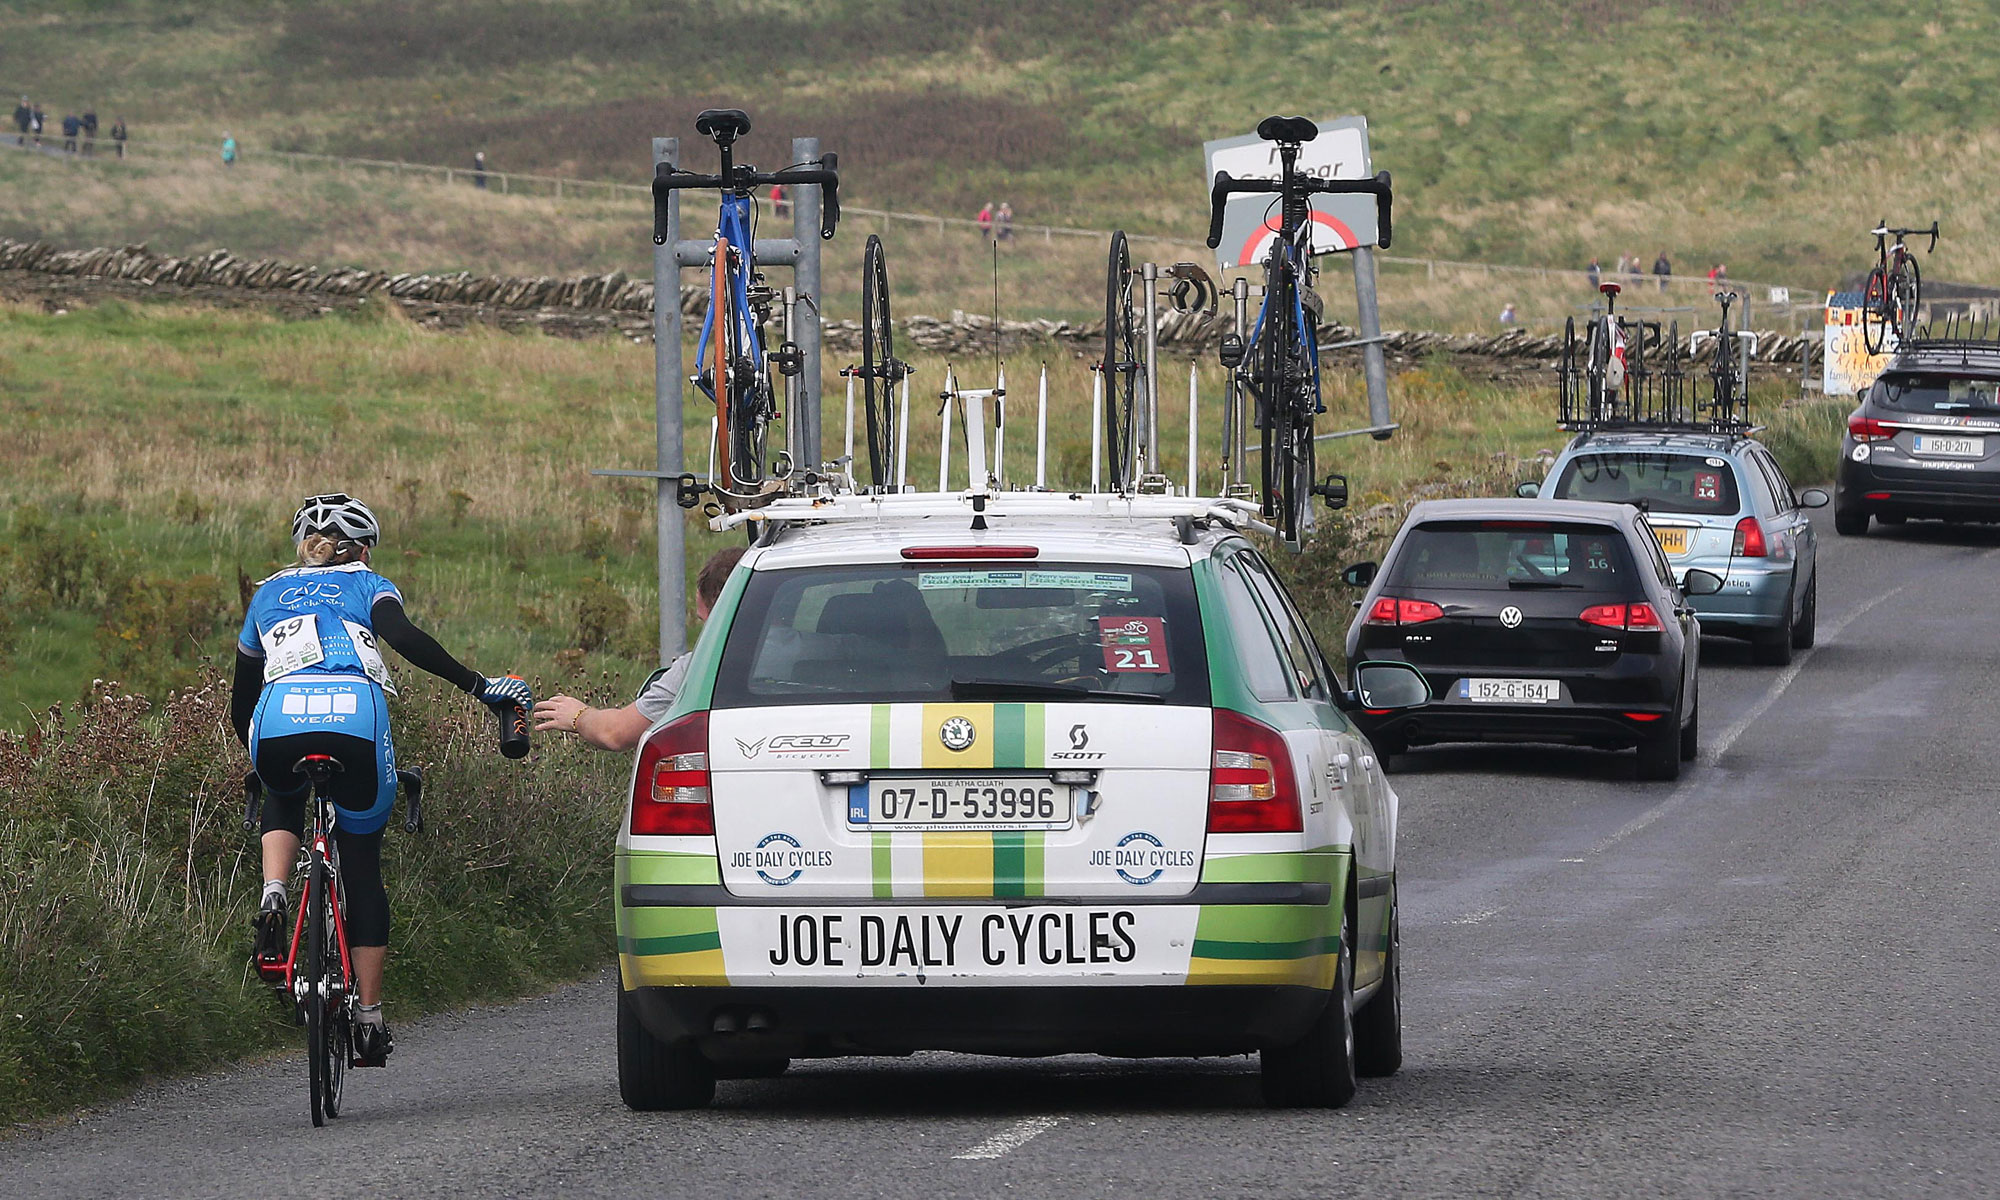 2015 Rás na mBan - Joe Daly Cycles support vehicle